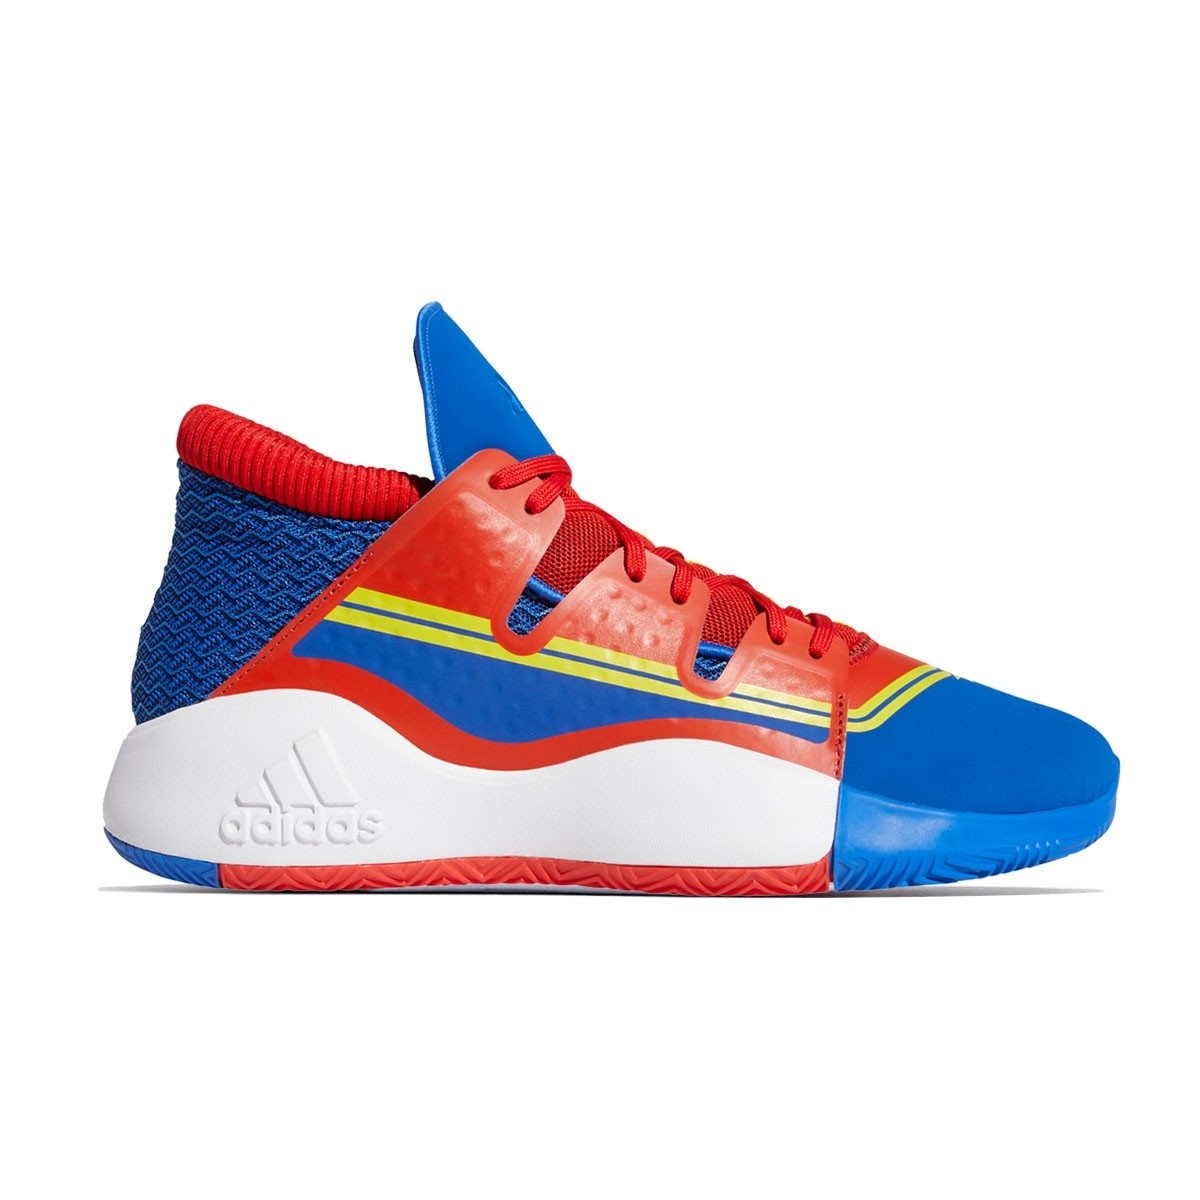 ADIDAS Pro Vision 'Captain Marvel'